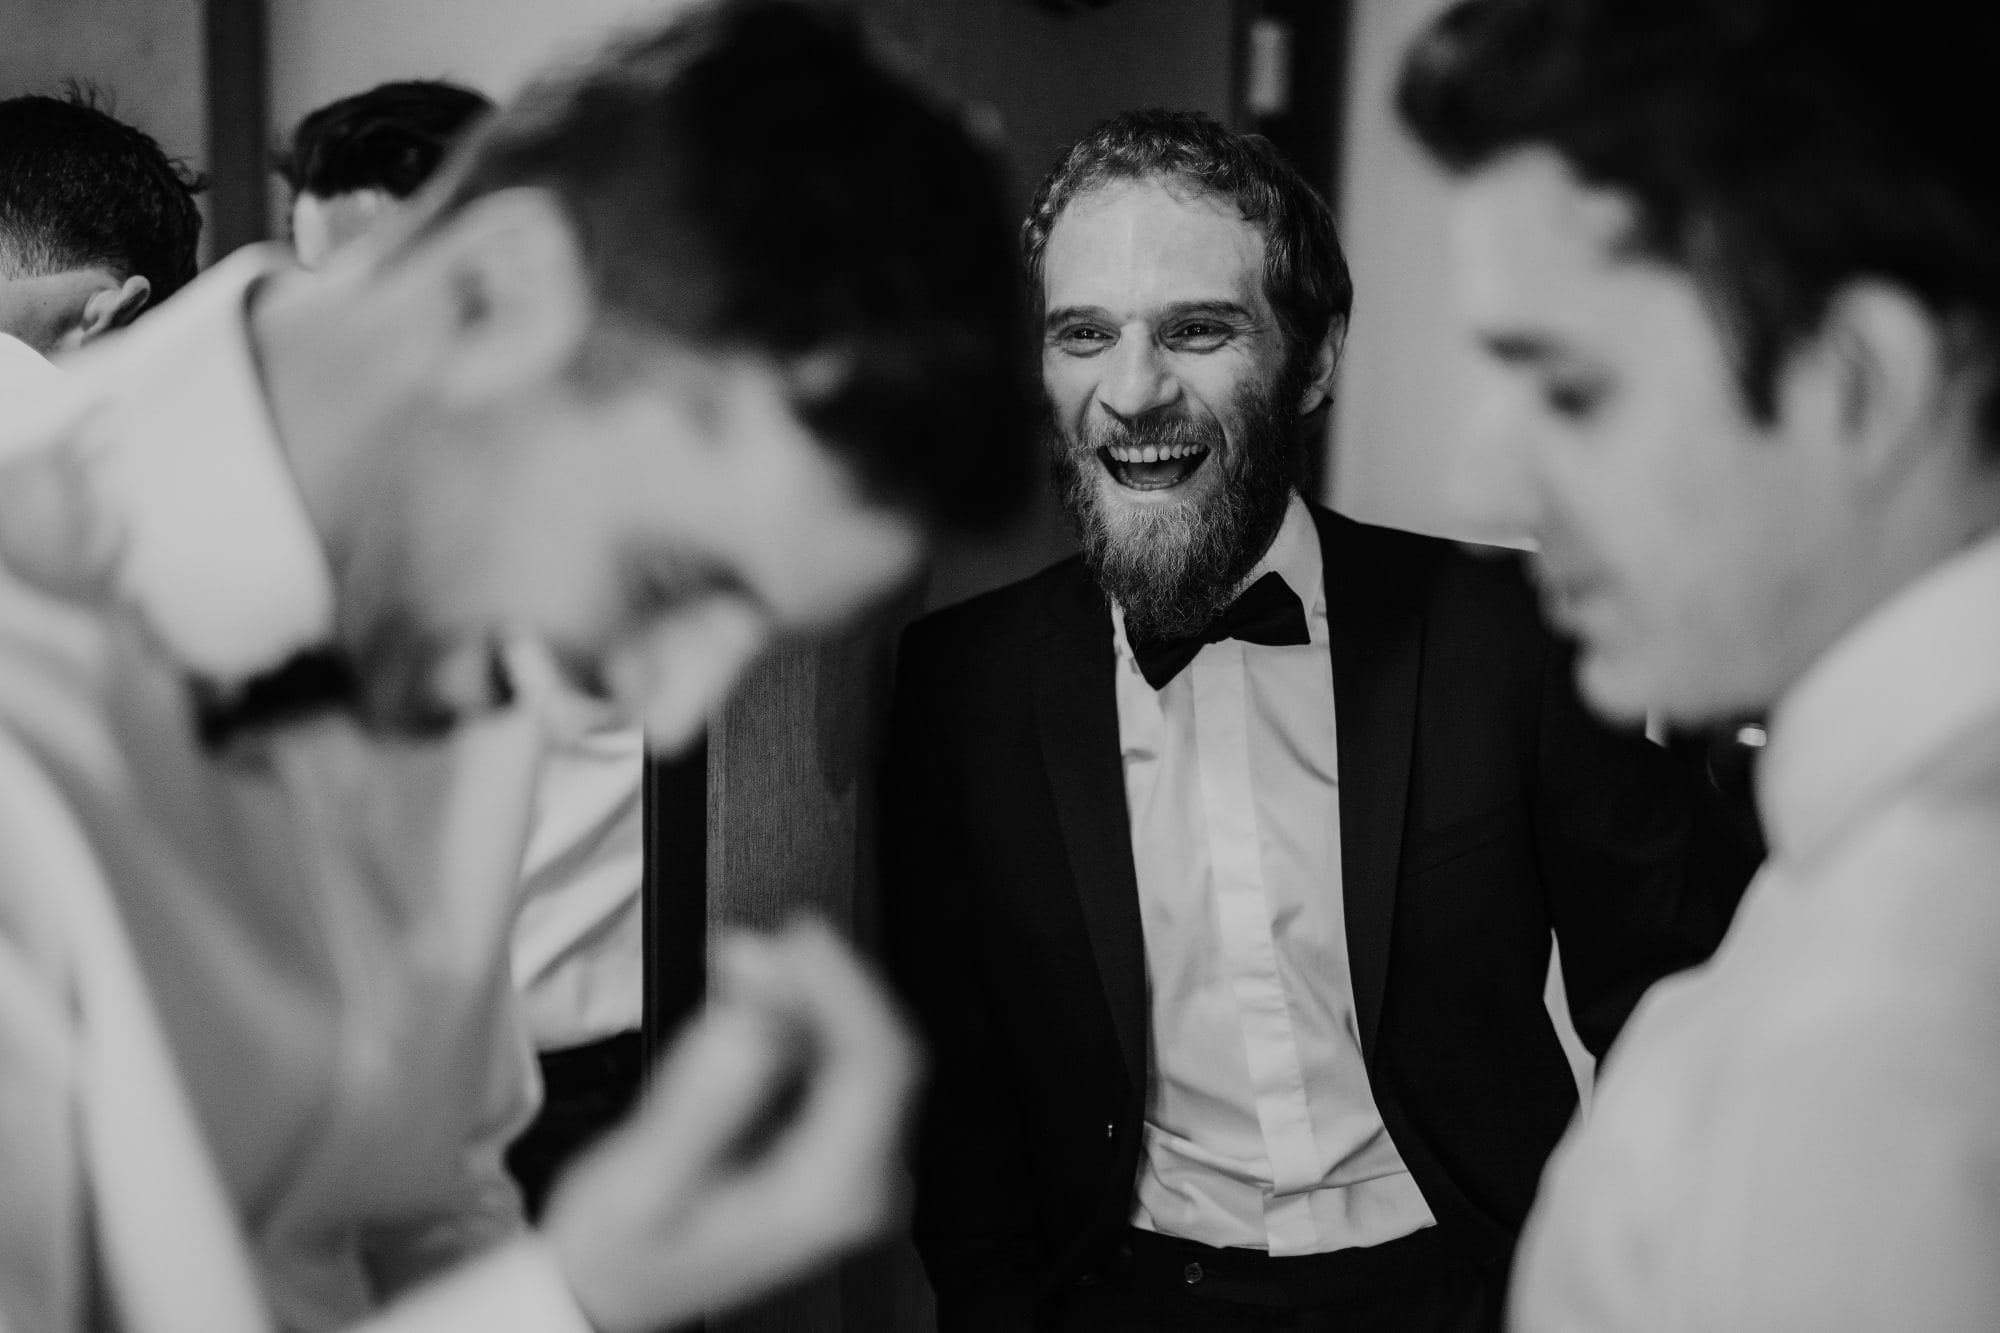 Groomsmen laughing with a suit and bowtie